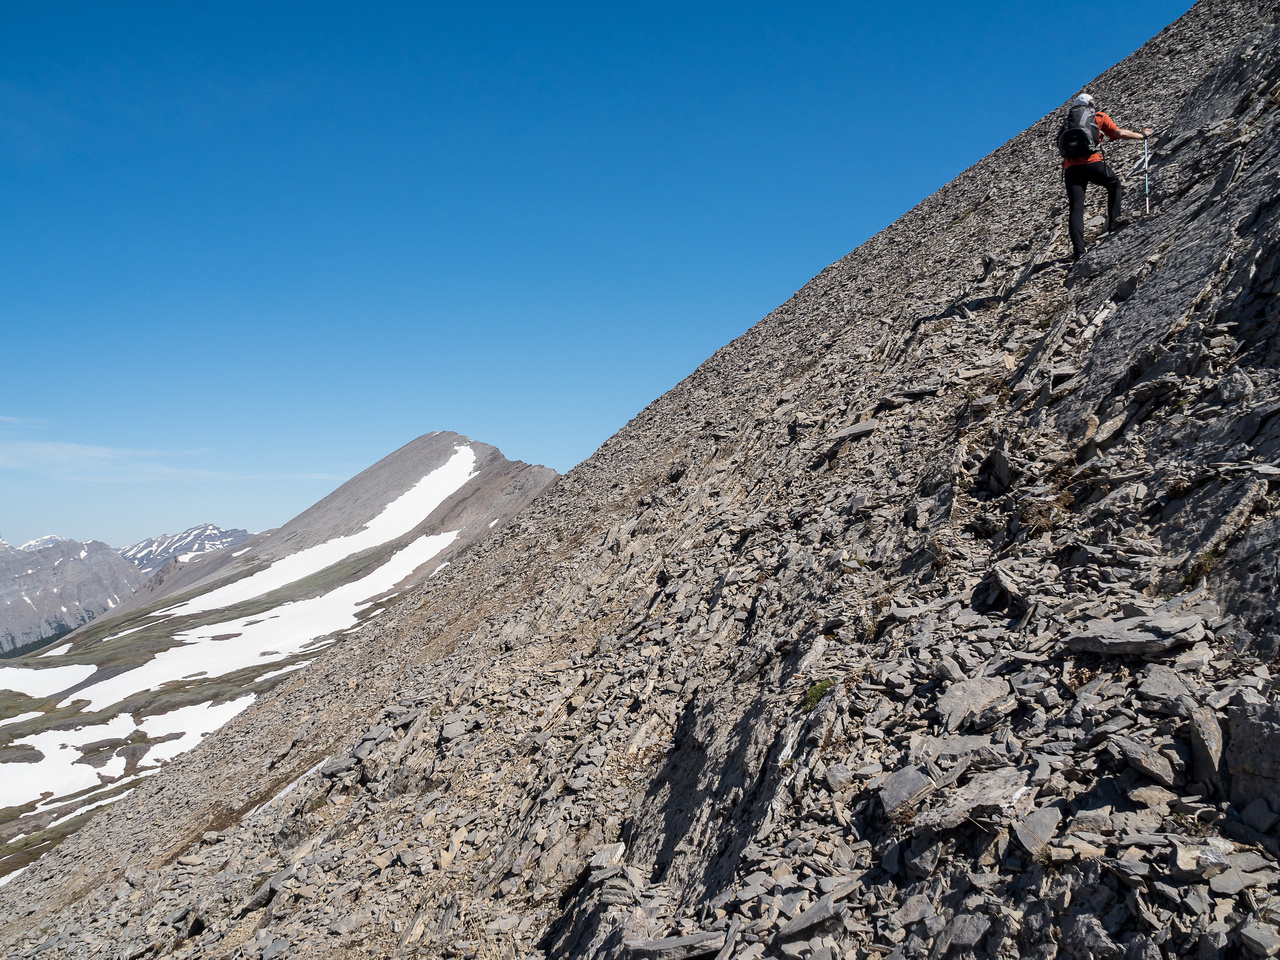 Looking towards Owl Peak's false summit from our ascent slope.